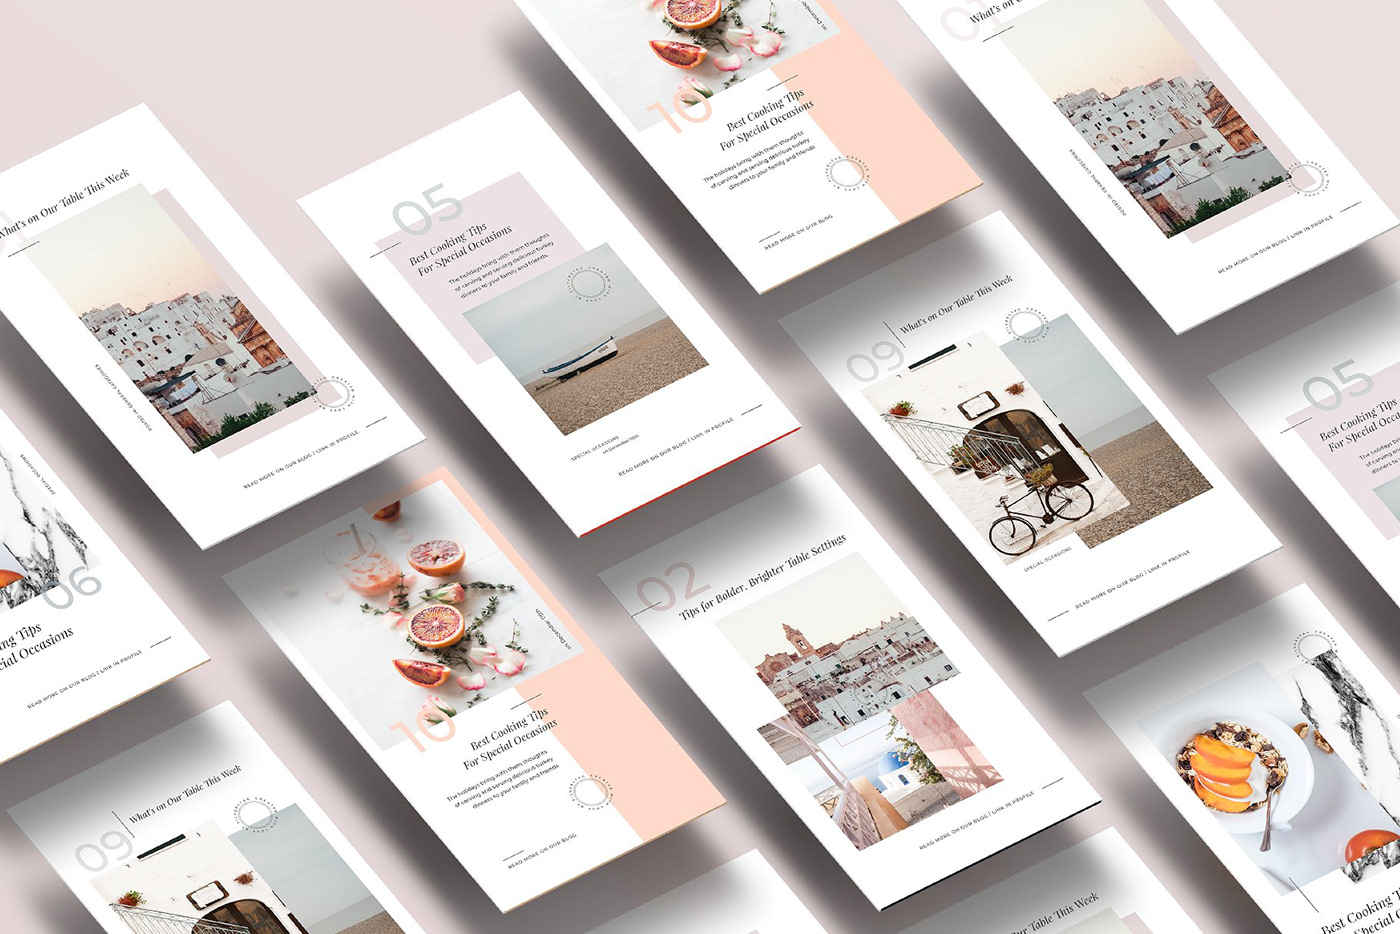 Food & Travel Instagram Stories Pack FREE DOWNLOAD! on Behance